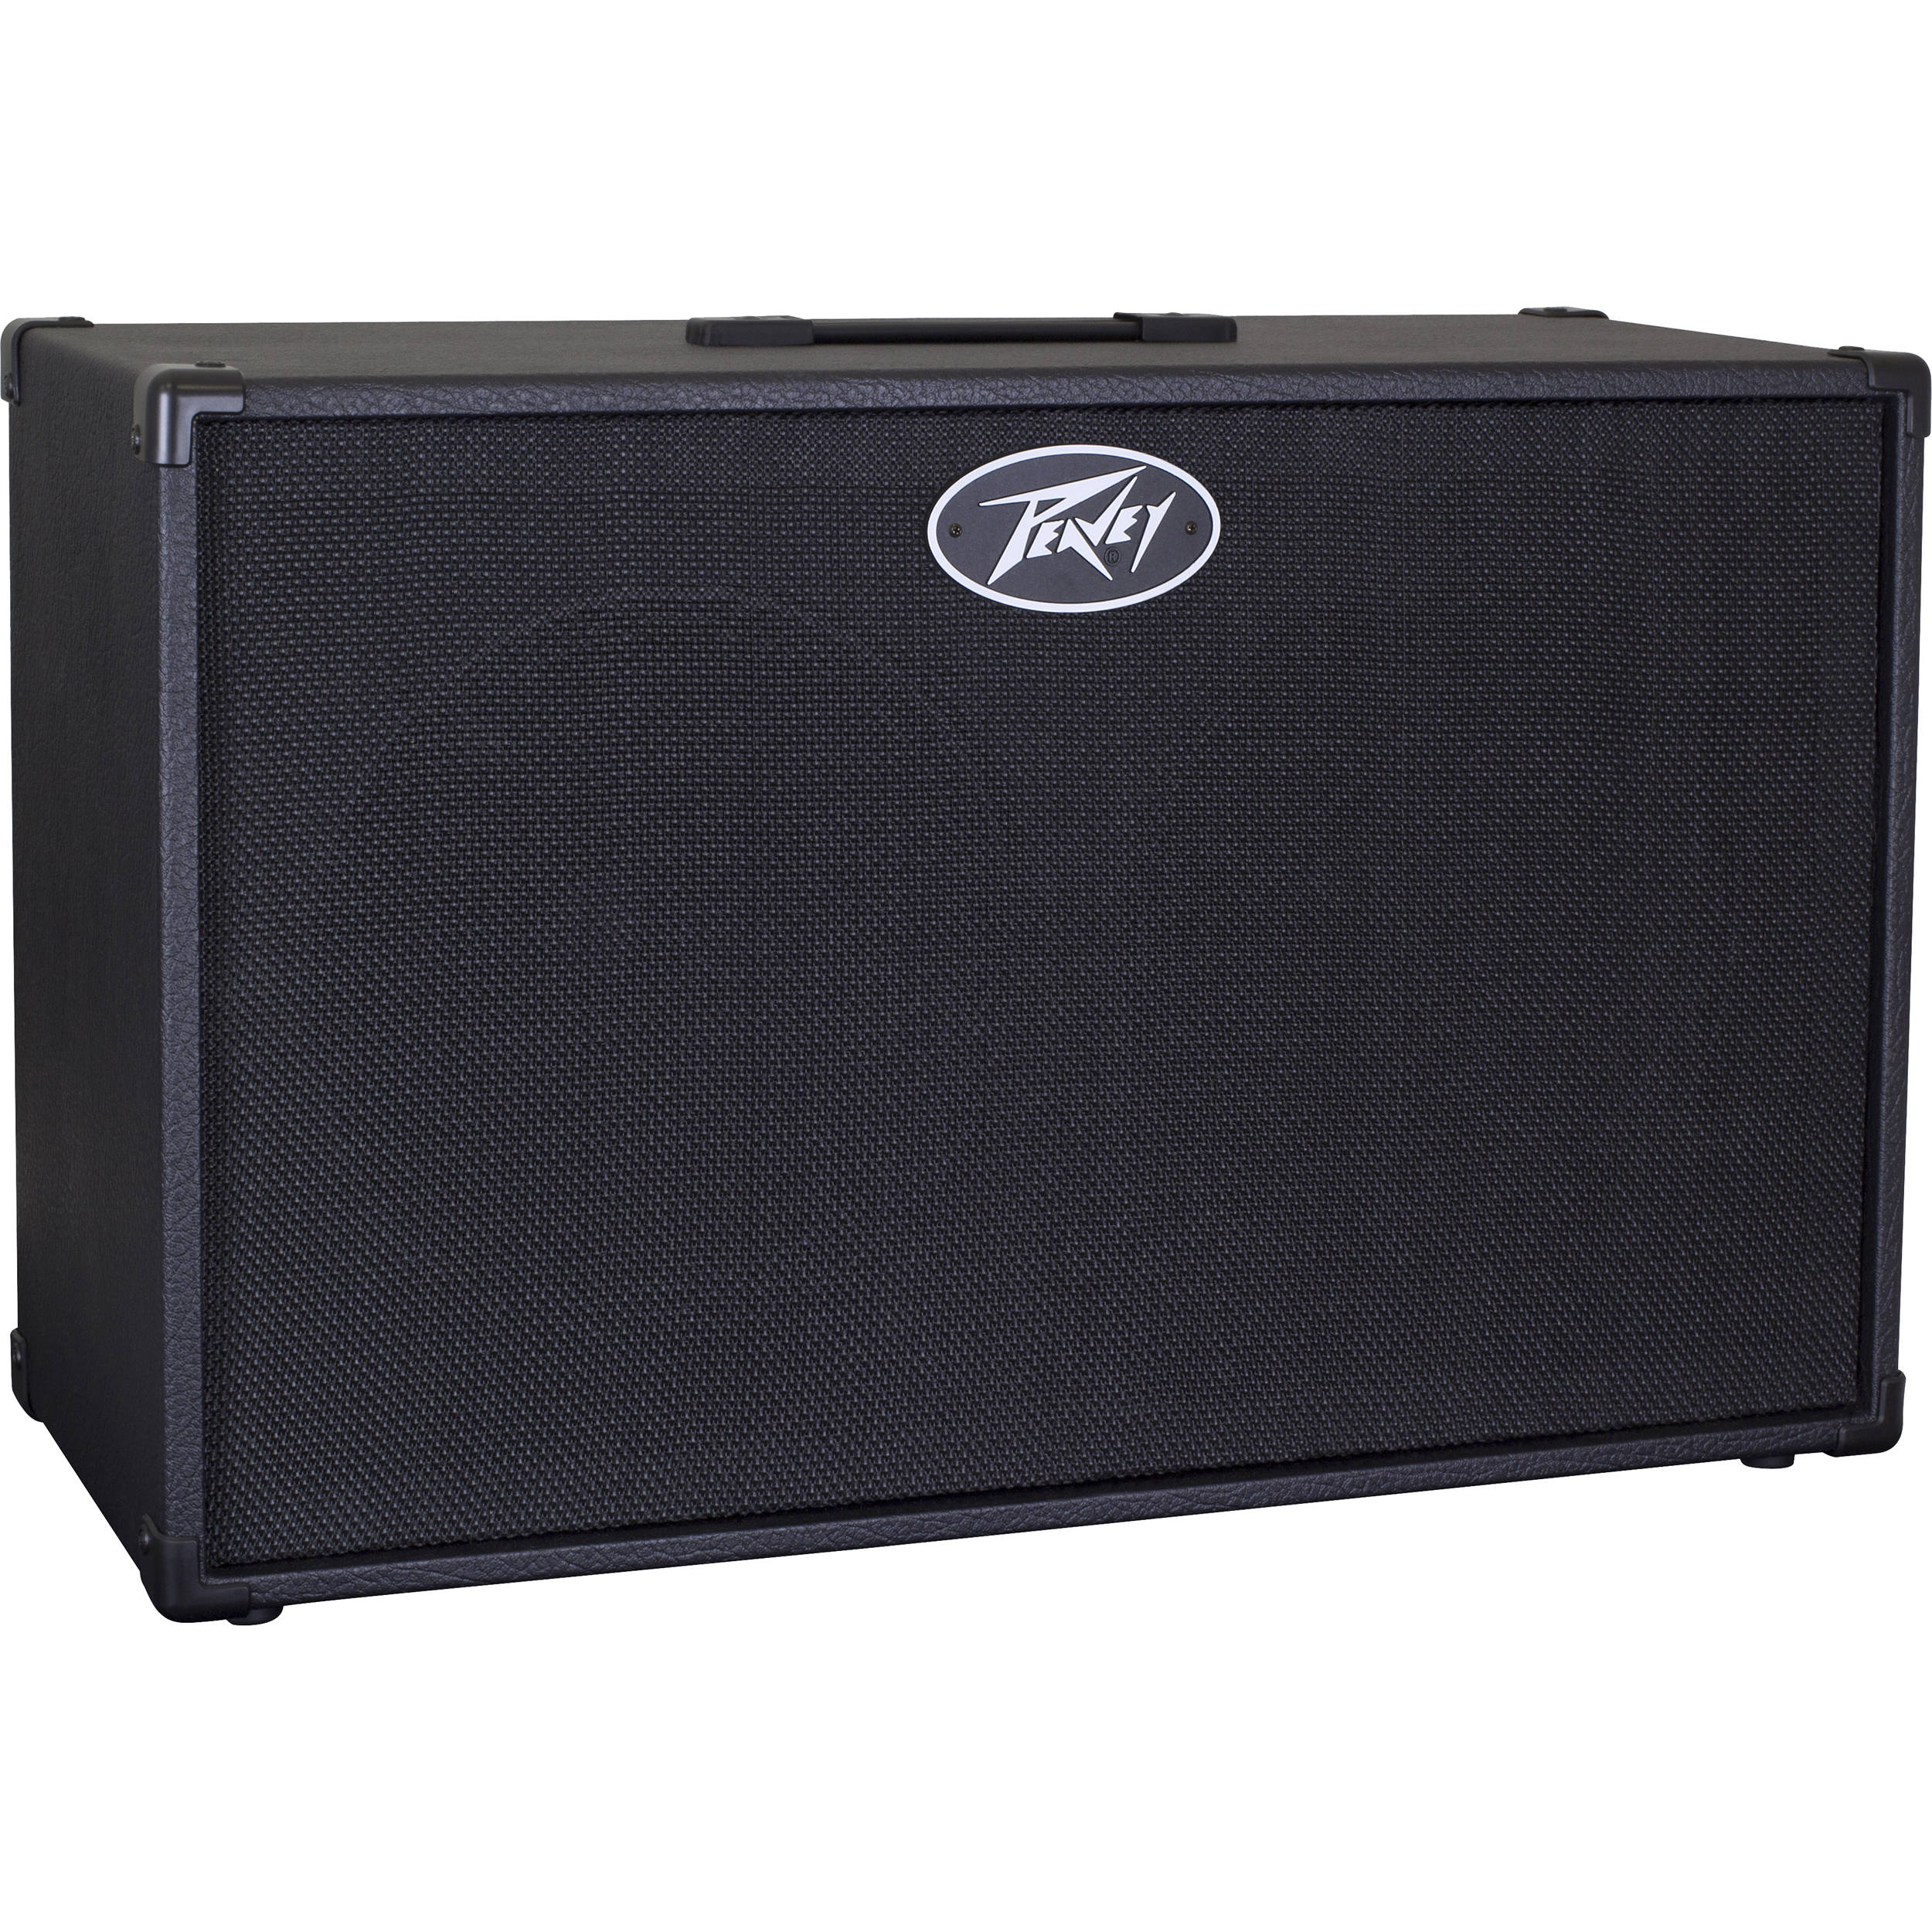 2x12 Extension Cabinet Cabinets Matttroy